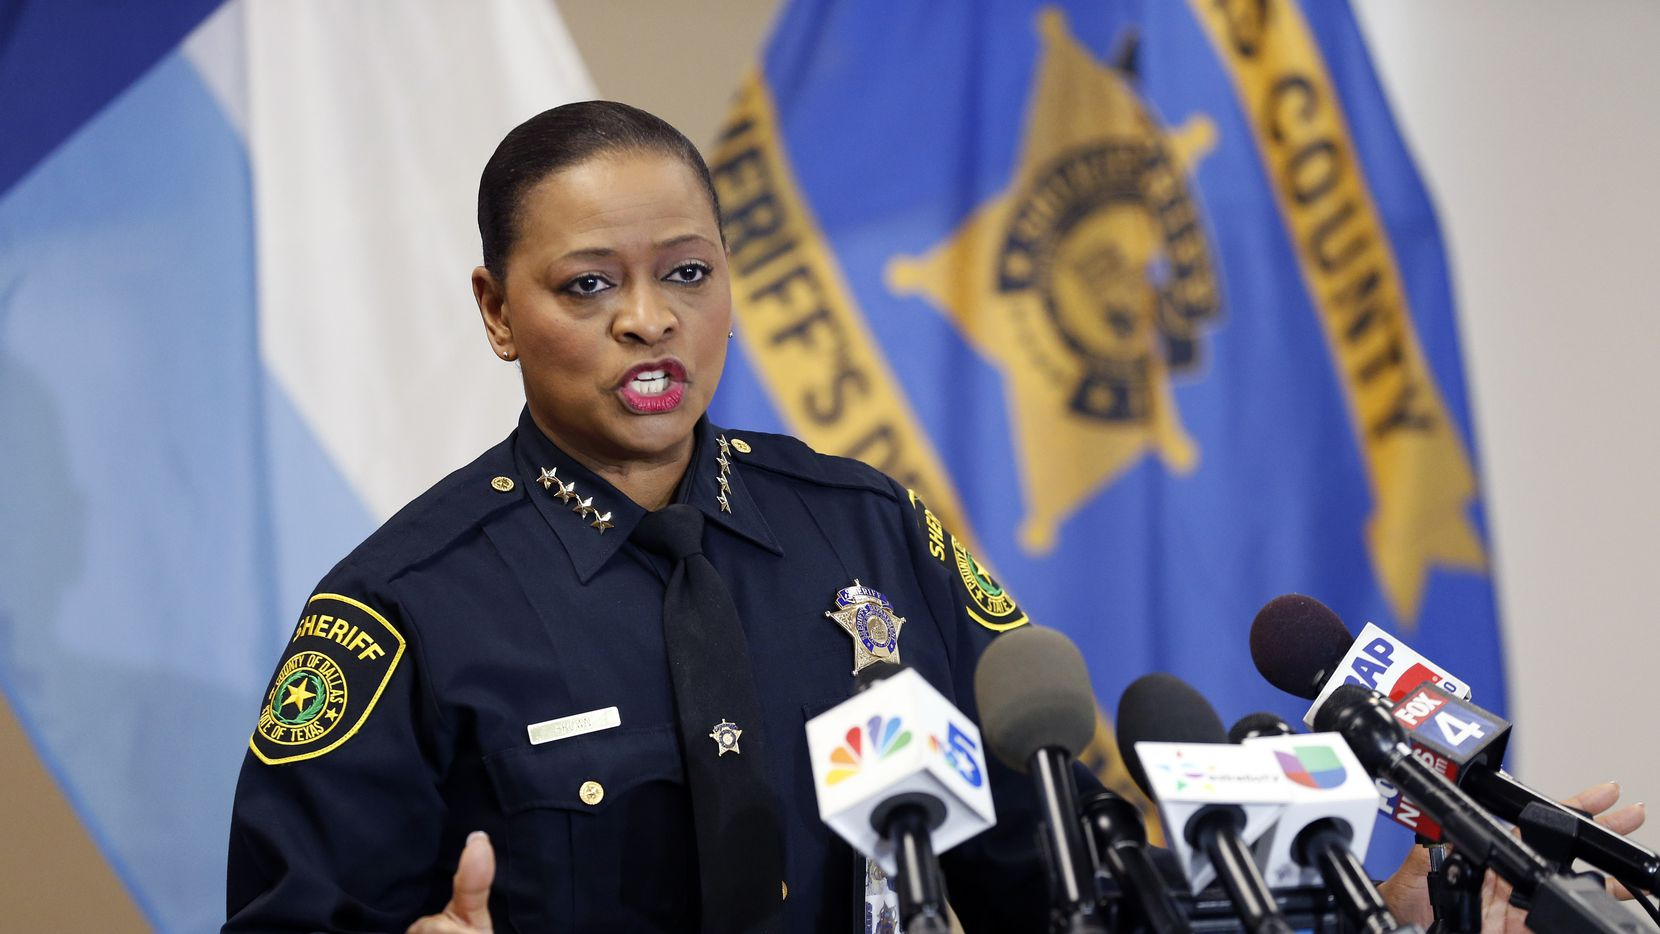 Dallas County Sheriff Marian Brown speaks about the arrest of one of their own, deputy Austin Palmer, 33, during a press conference at the Frank Crowley Courts Building in Dallas, Friday, January 17, 2020.  Palmer was booked on charges of assault causing bodily injury and official oppression, Thursday. Both are misdemeanors. The Sheriff explained Palmer mistreated a man in custody during a prisoner transport. He has since bonded out. (Tom Fox/The Dallas Morning News)